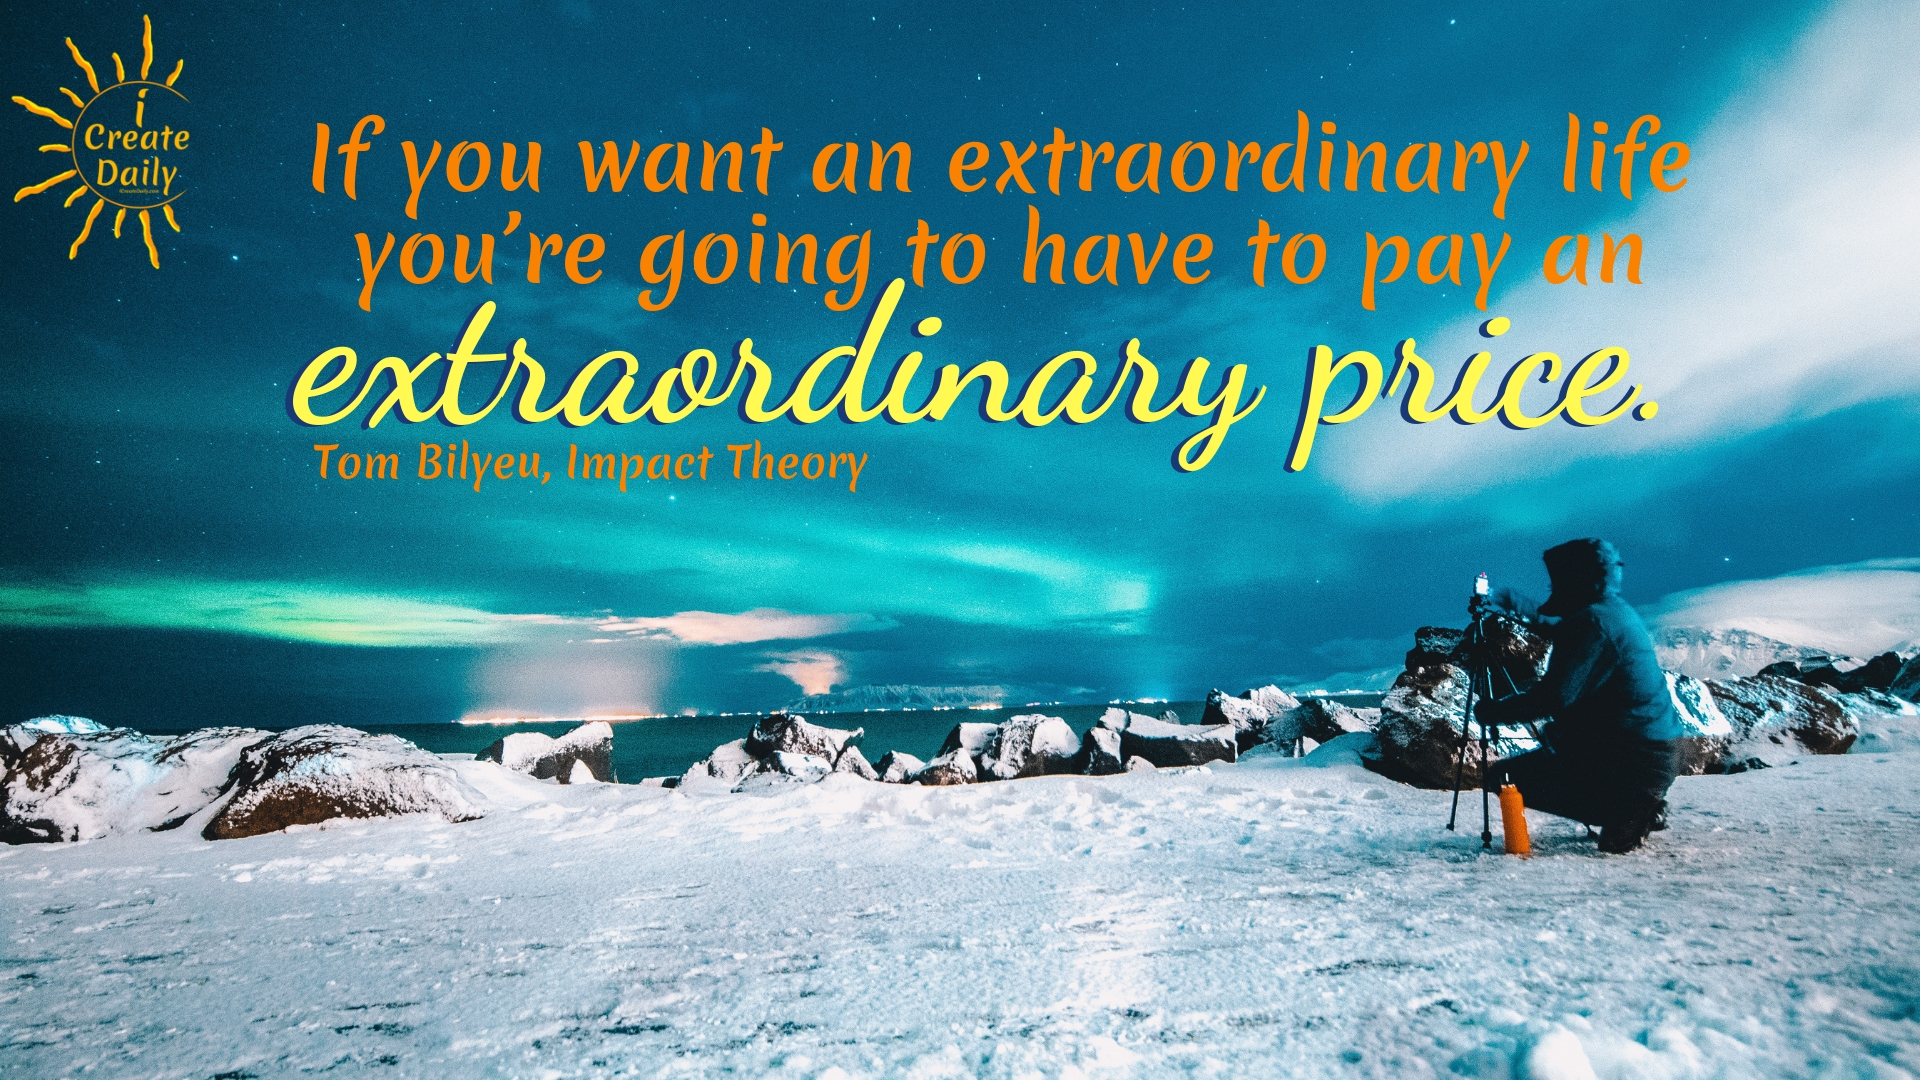 If you want an extraordinary life you're going to have to pay an extraordinary price. ~Tom Bilyeu, Impact Theory #quotes #success #extraordinary